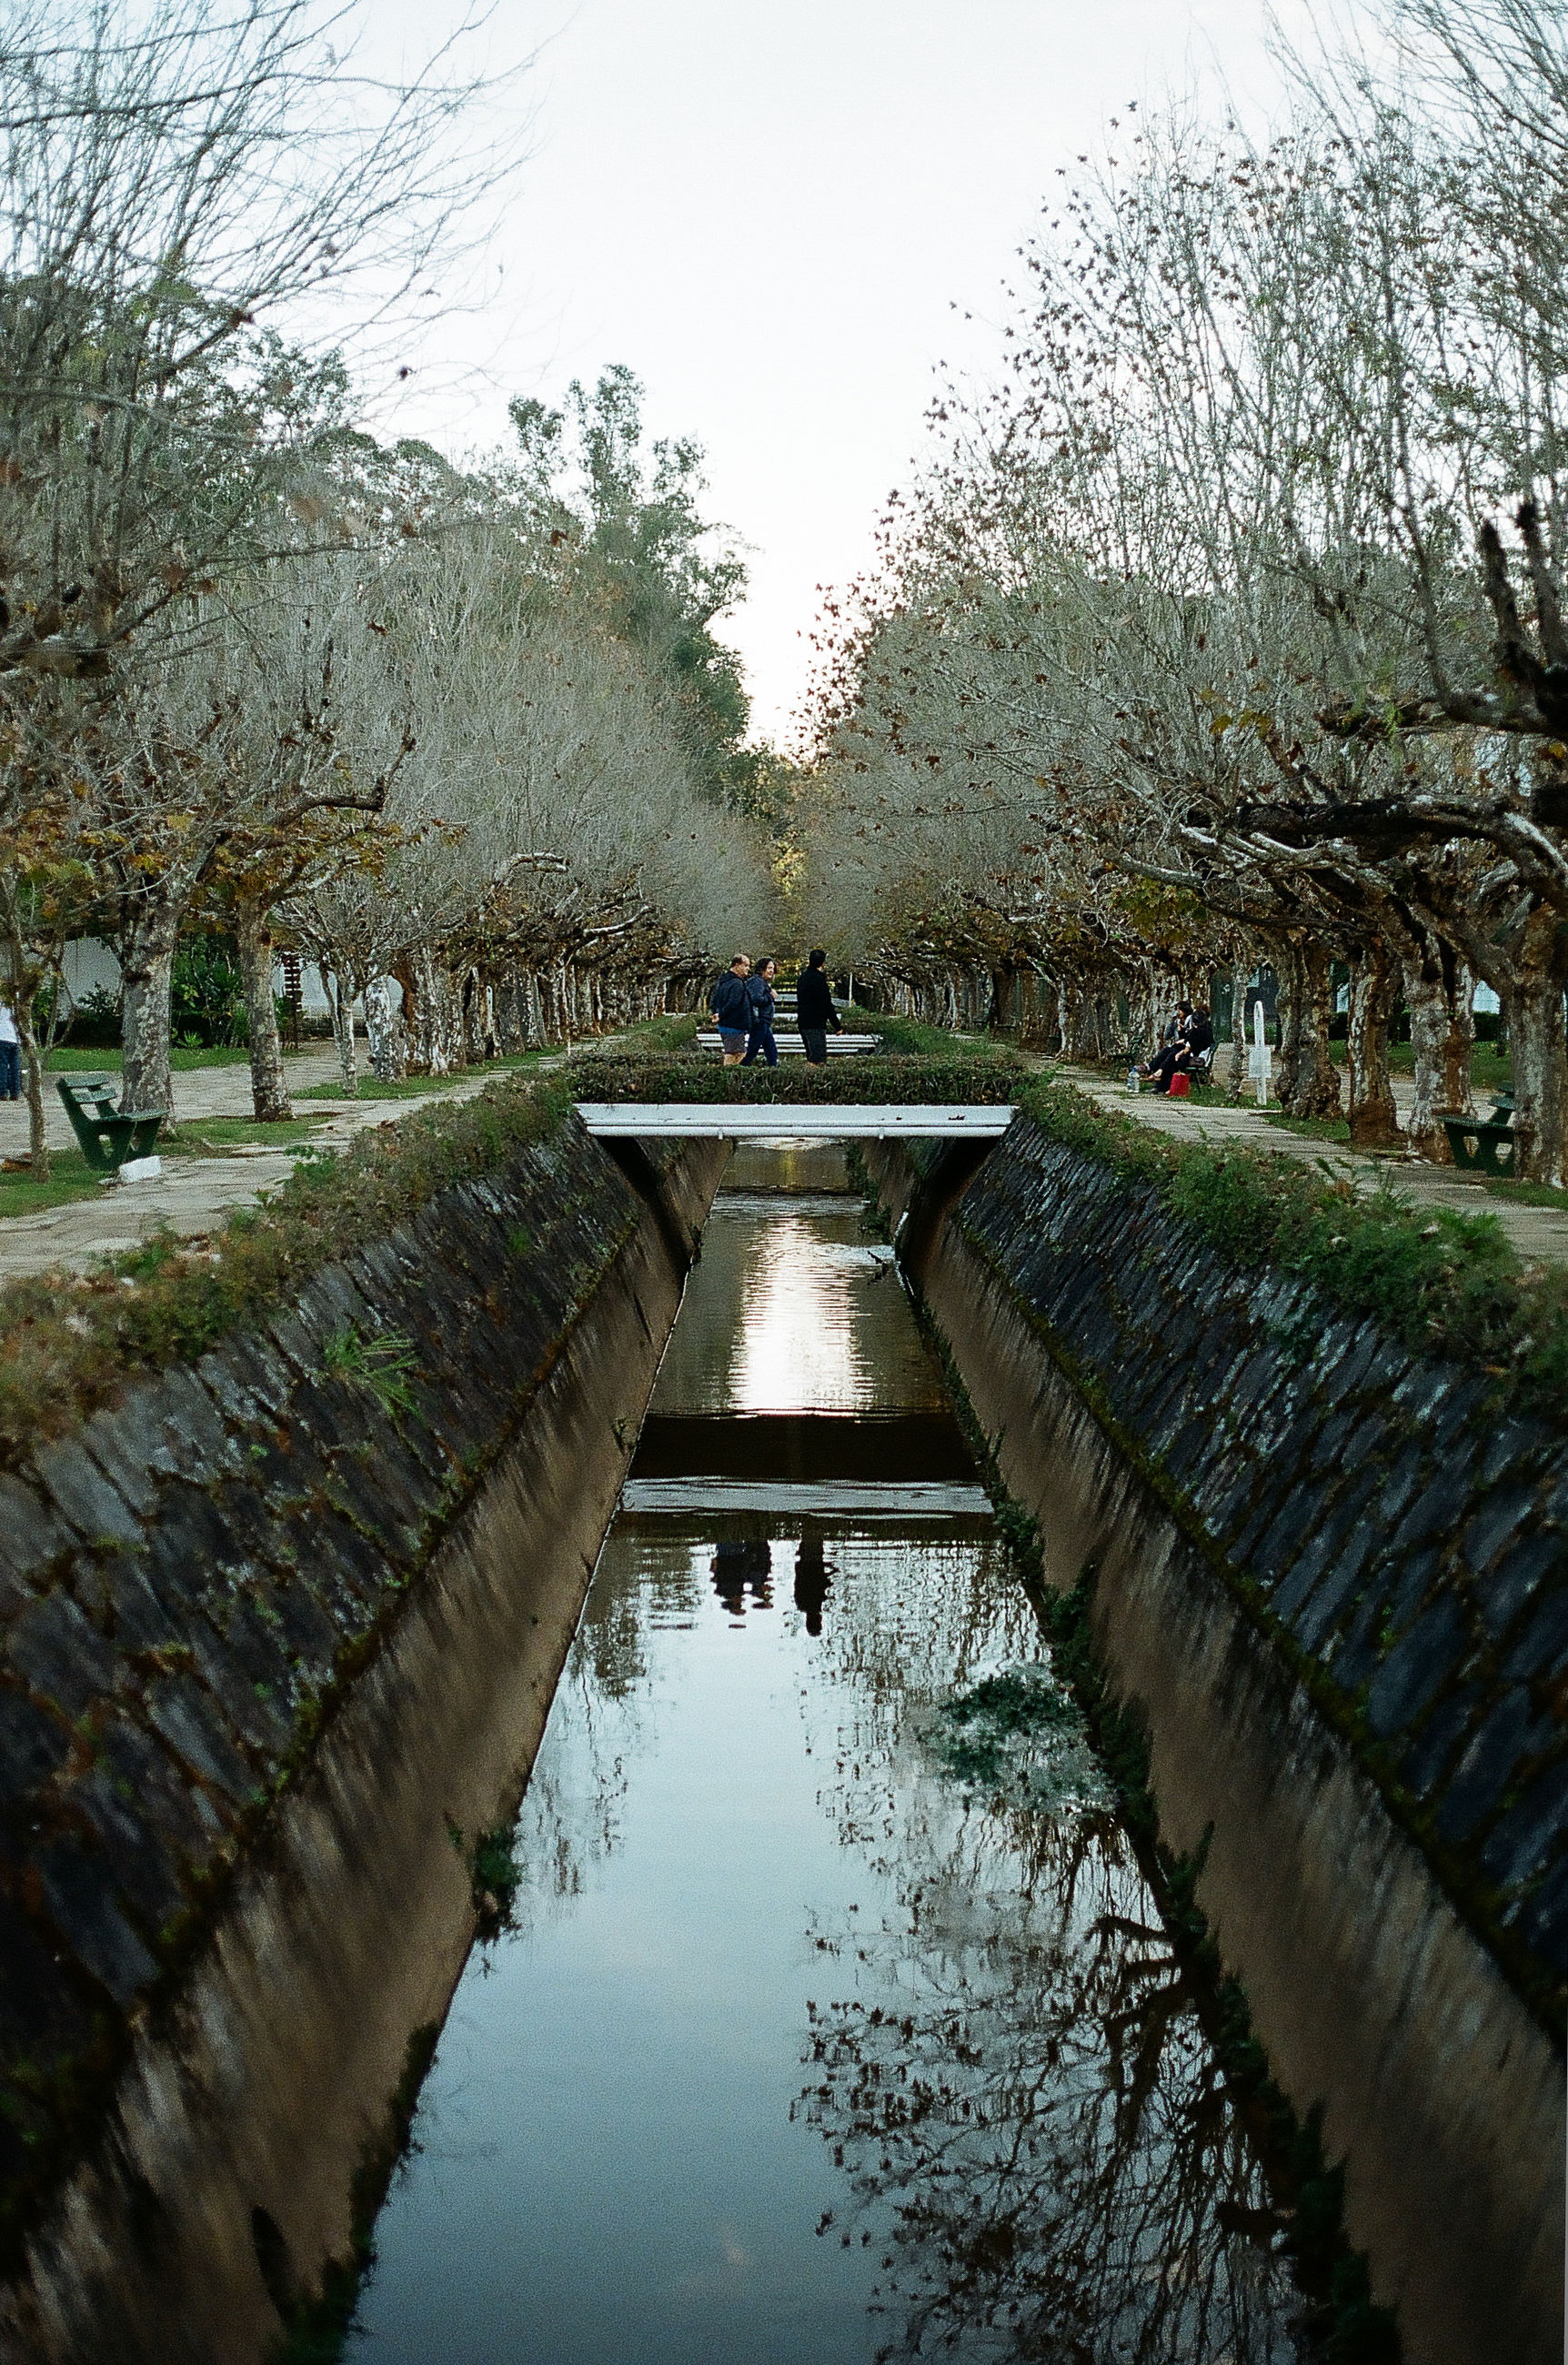 water, tree, nature, reflection, day, canal, growth, beauty in nature, outdoors, sky, scenics, no people, flower